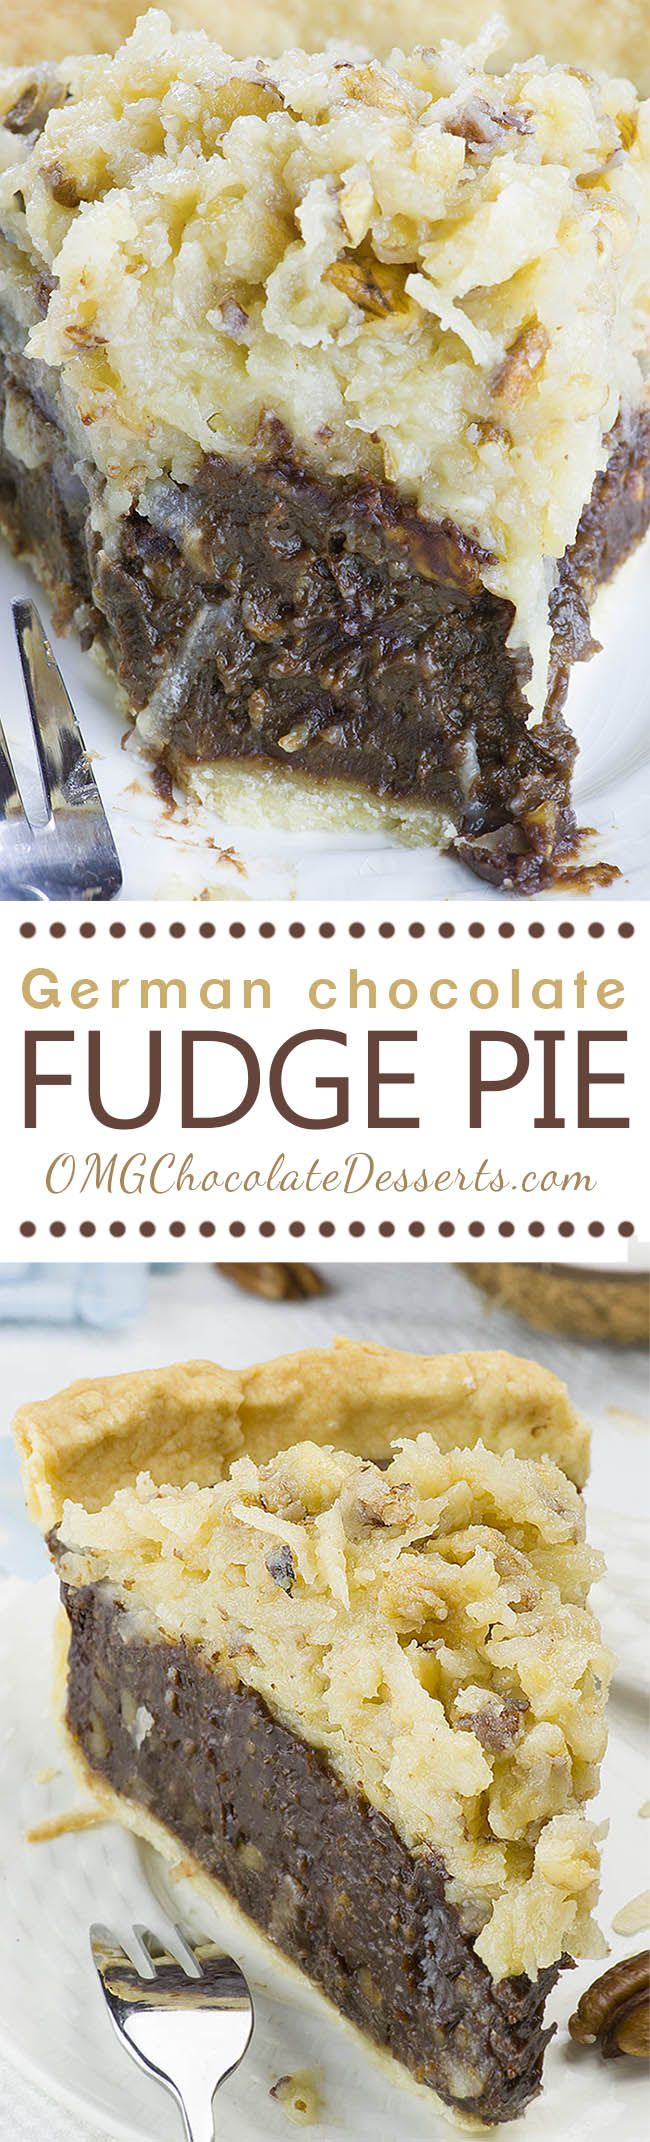 Yummy! I adore German Chocolate Pie - one of the best chocolate dessert ever. Maybe I make it for the Christmas dessert.